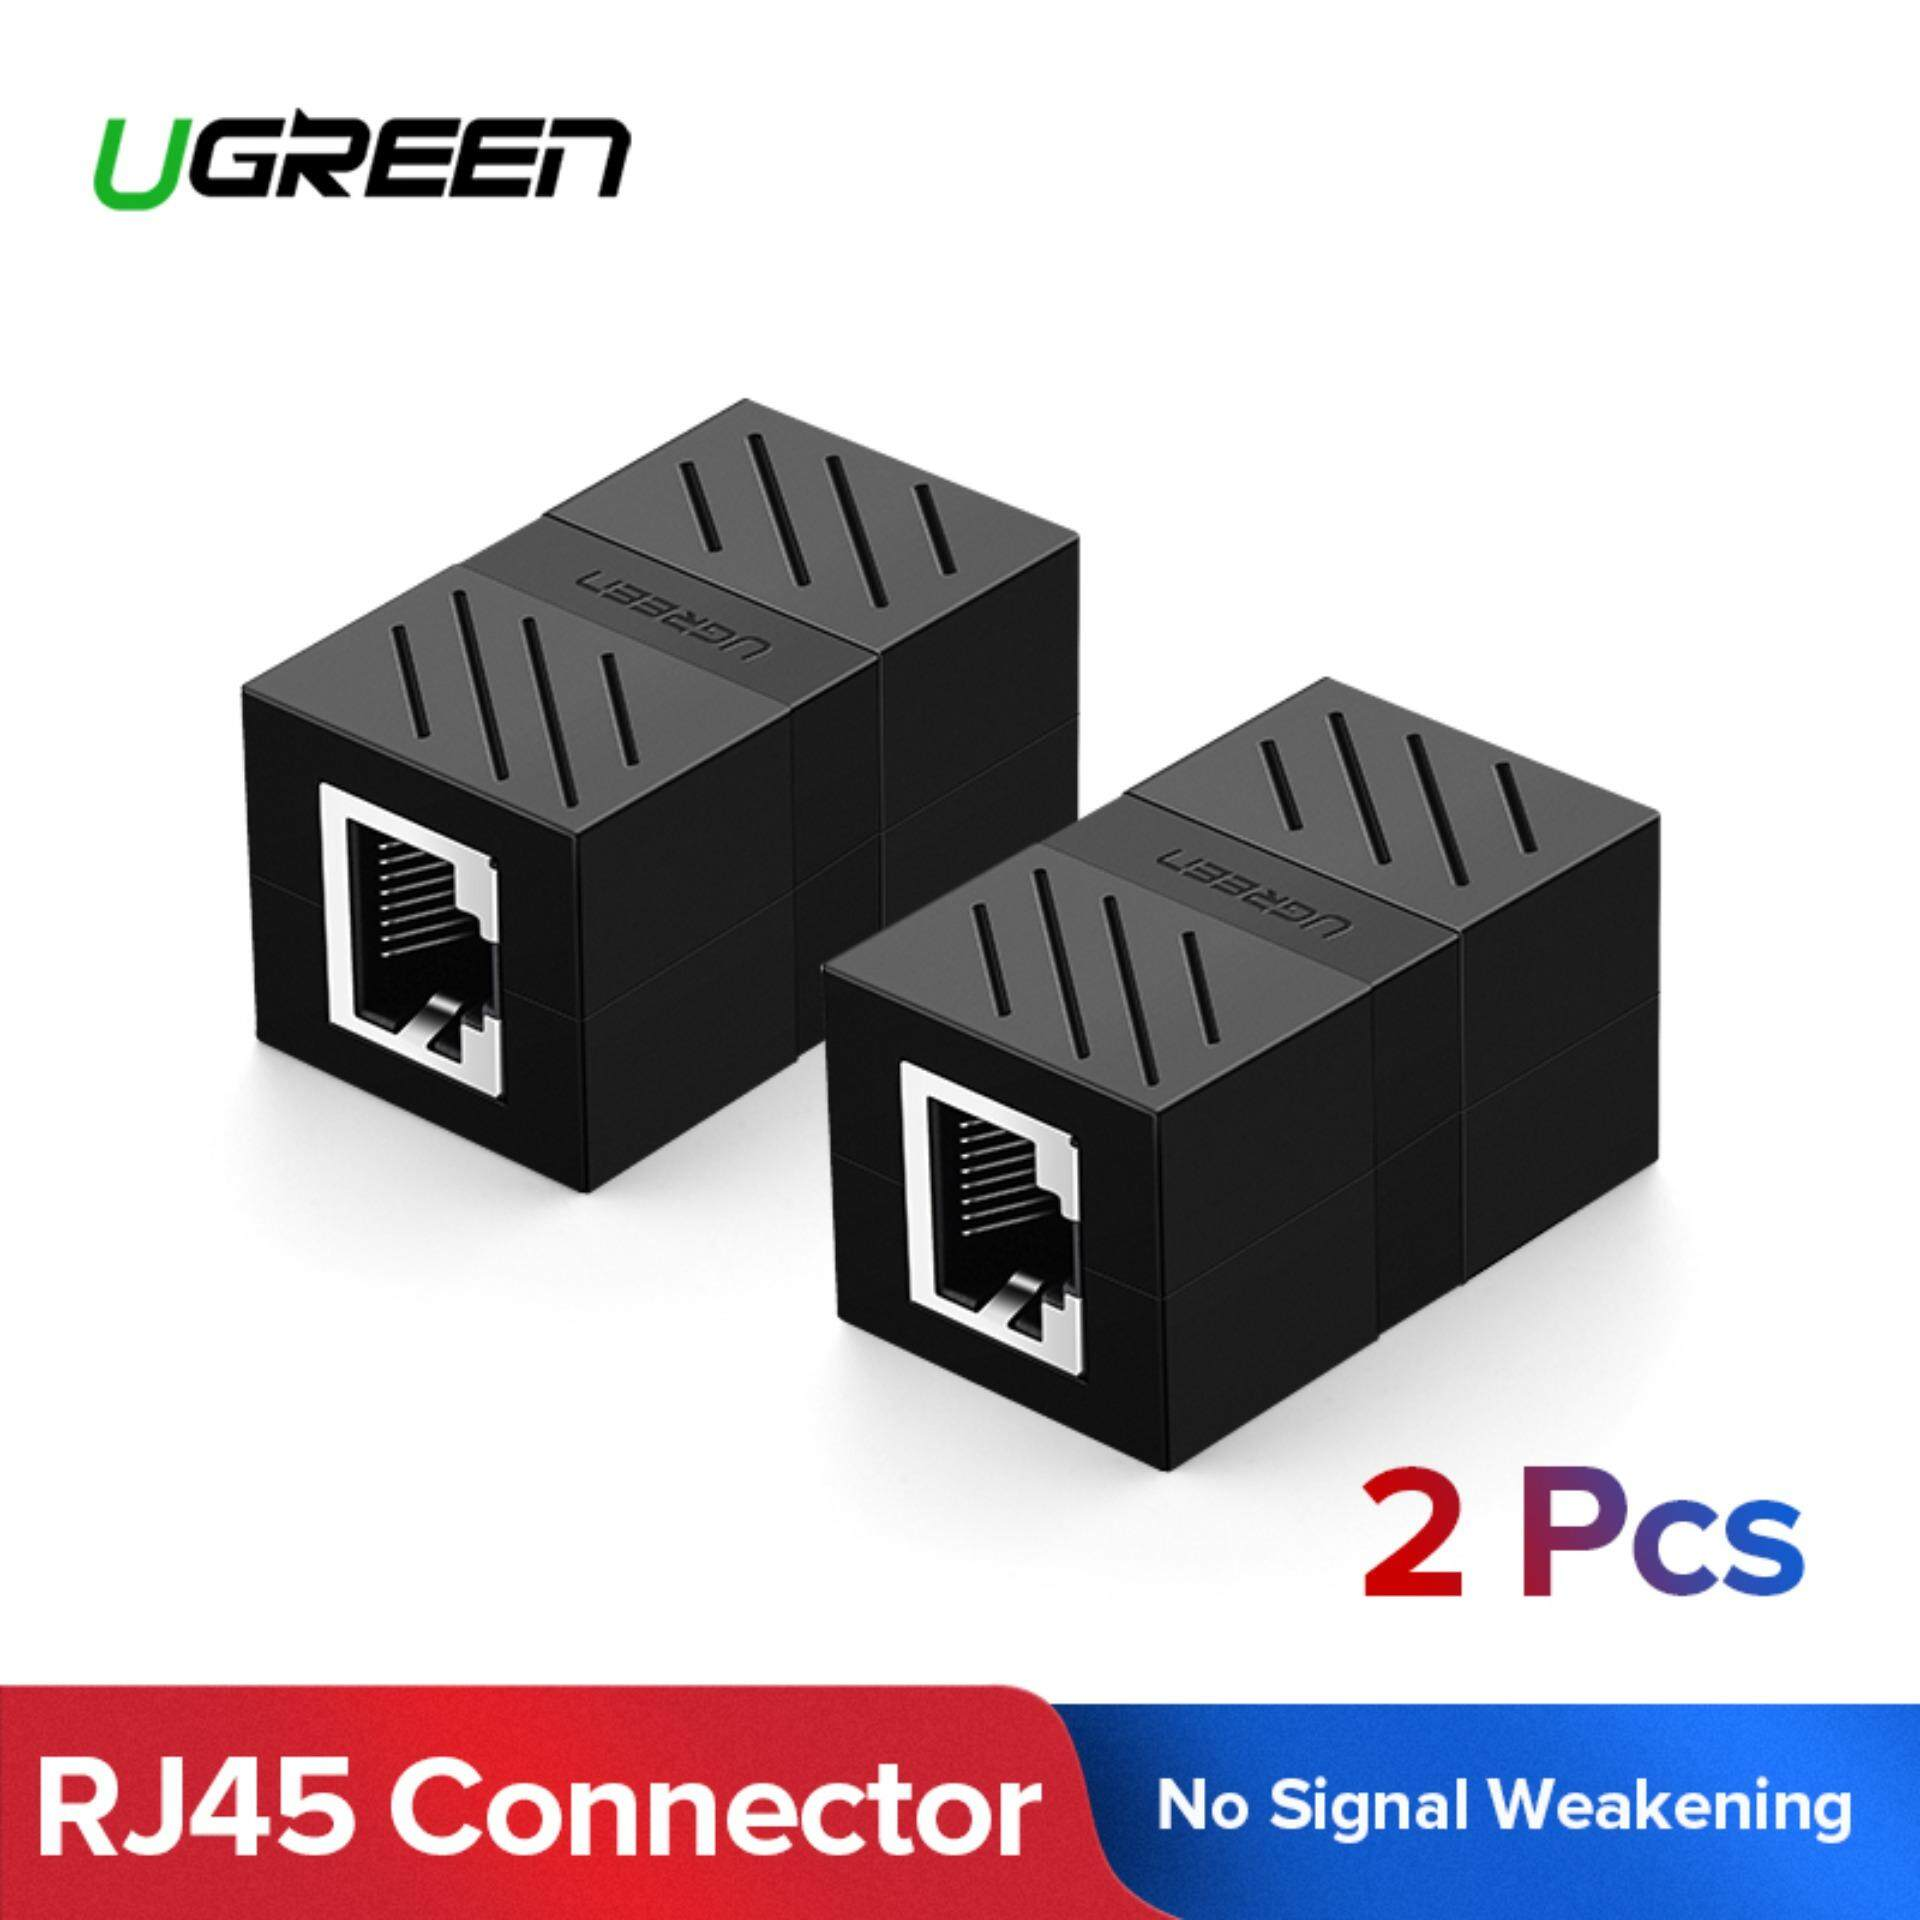 Ugreen 2pack In-Line Coupler Cat7/cat6/cat5e Ethernet Cable Extender Adapter -Black By Ugreen Flagship Store.